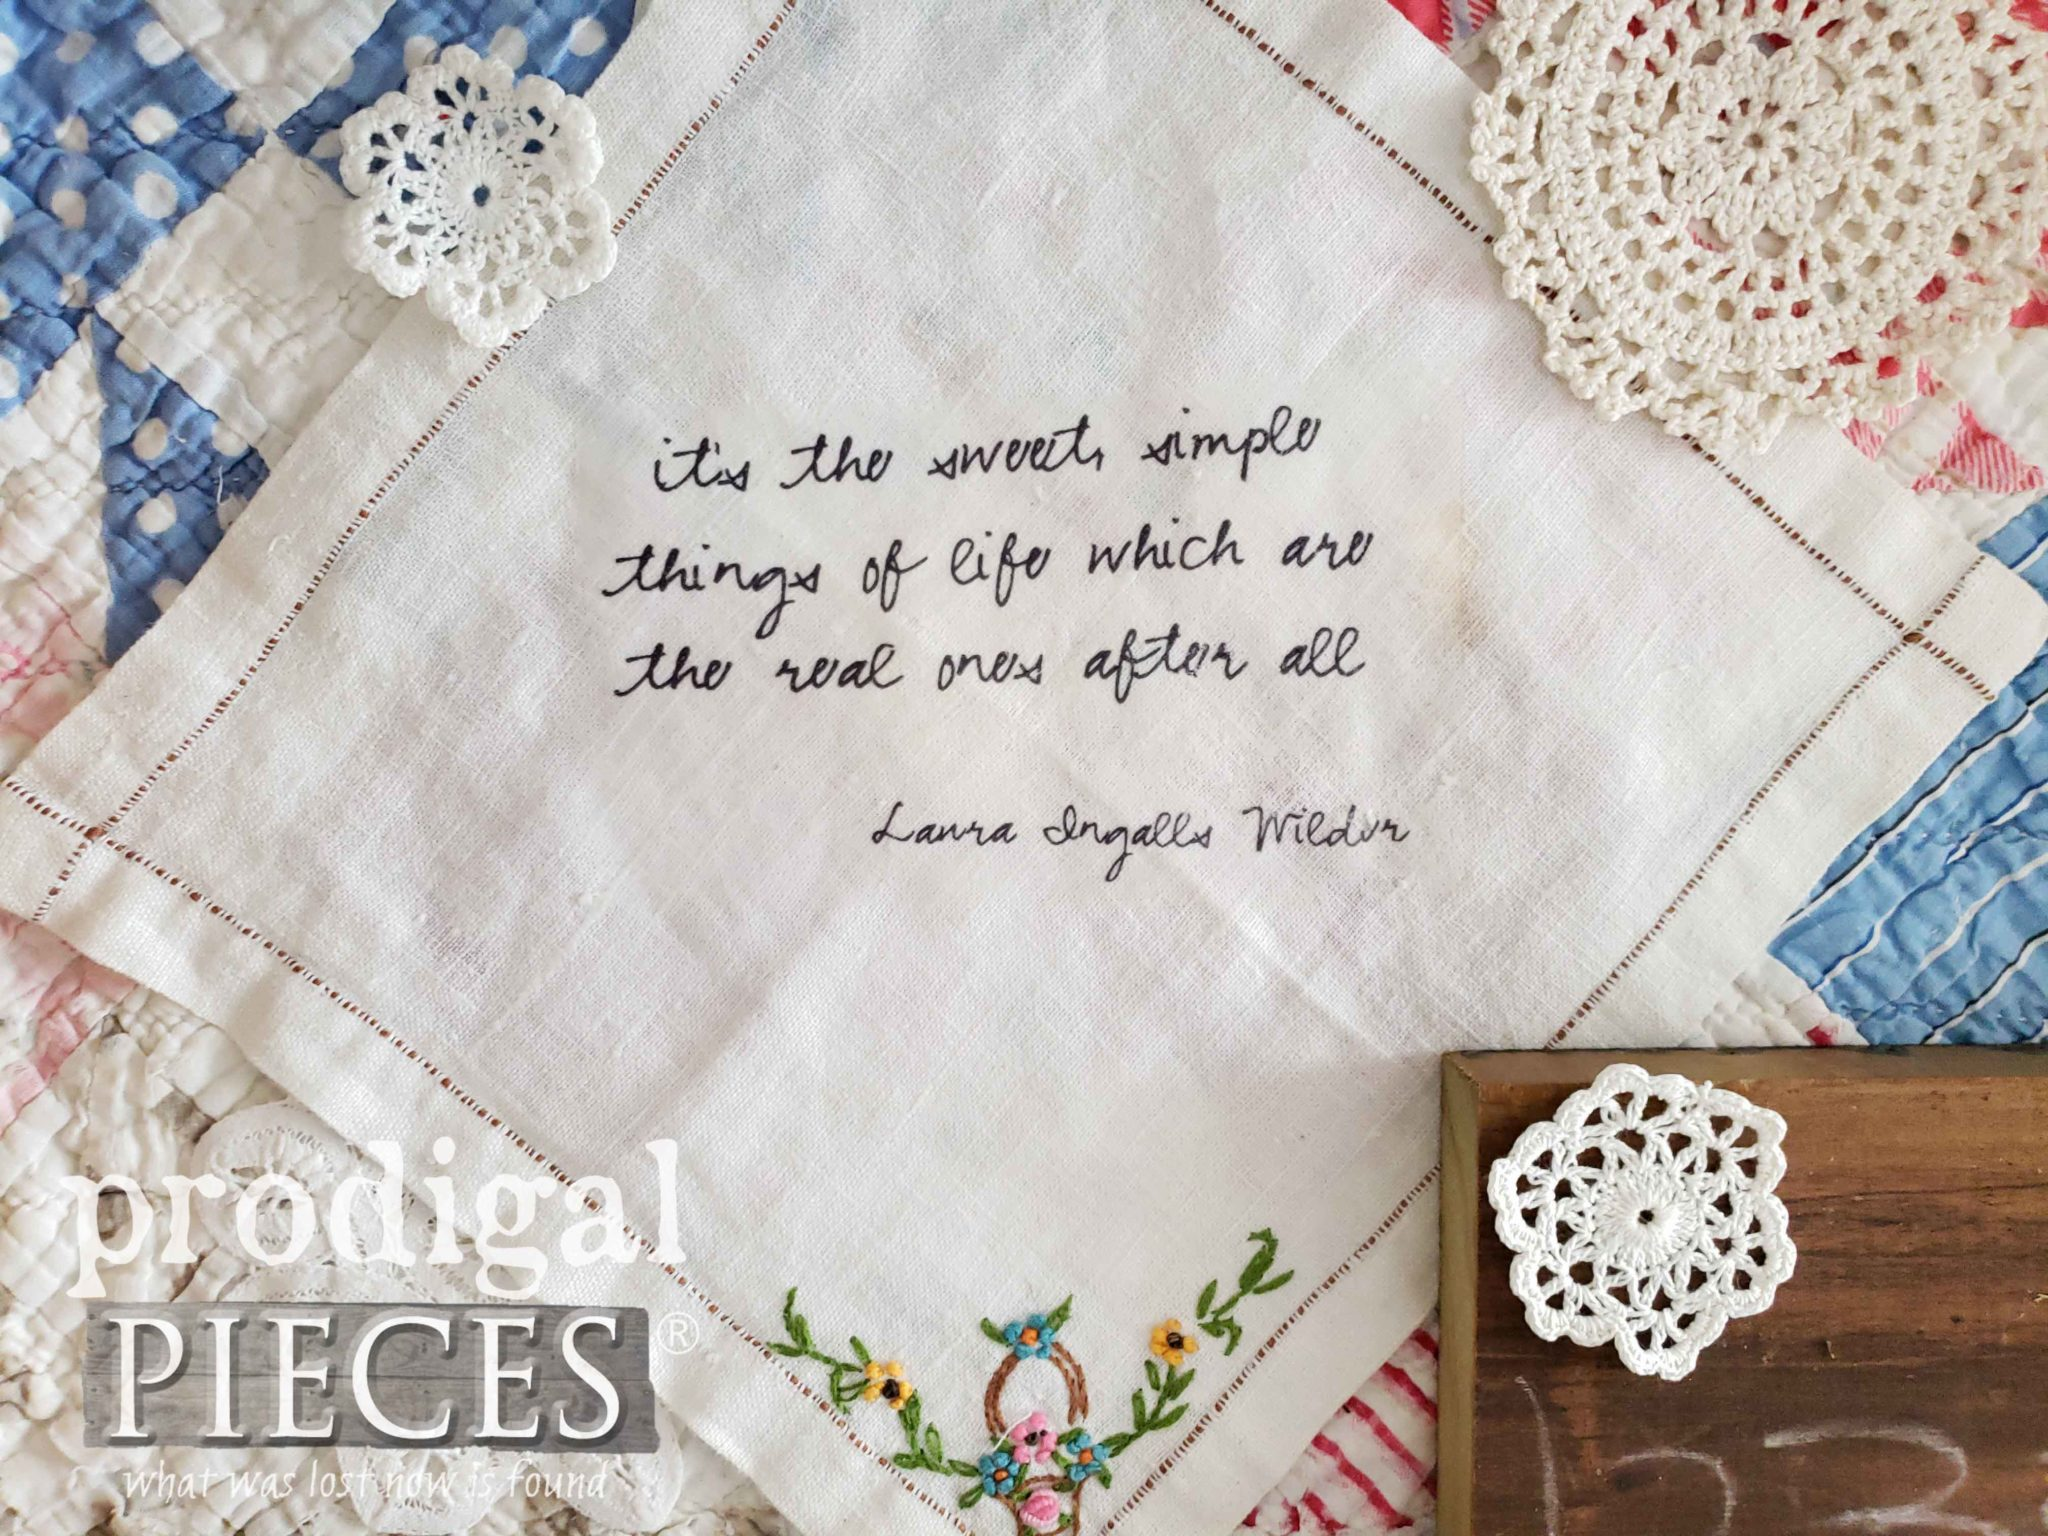 Upcycled Vintage Hankie with Quote from Laura Ingalls Wilder by Larissa of Prodigal Pieces | prodigalpieces.com